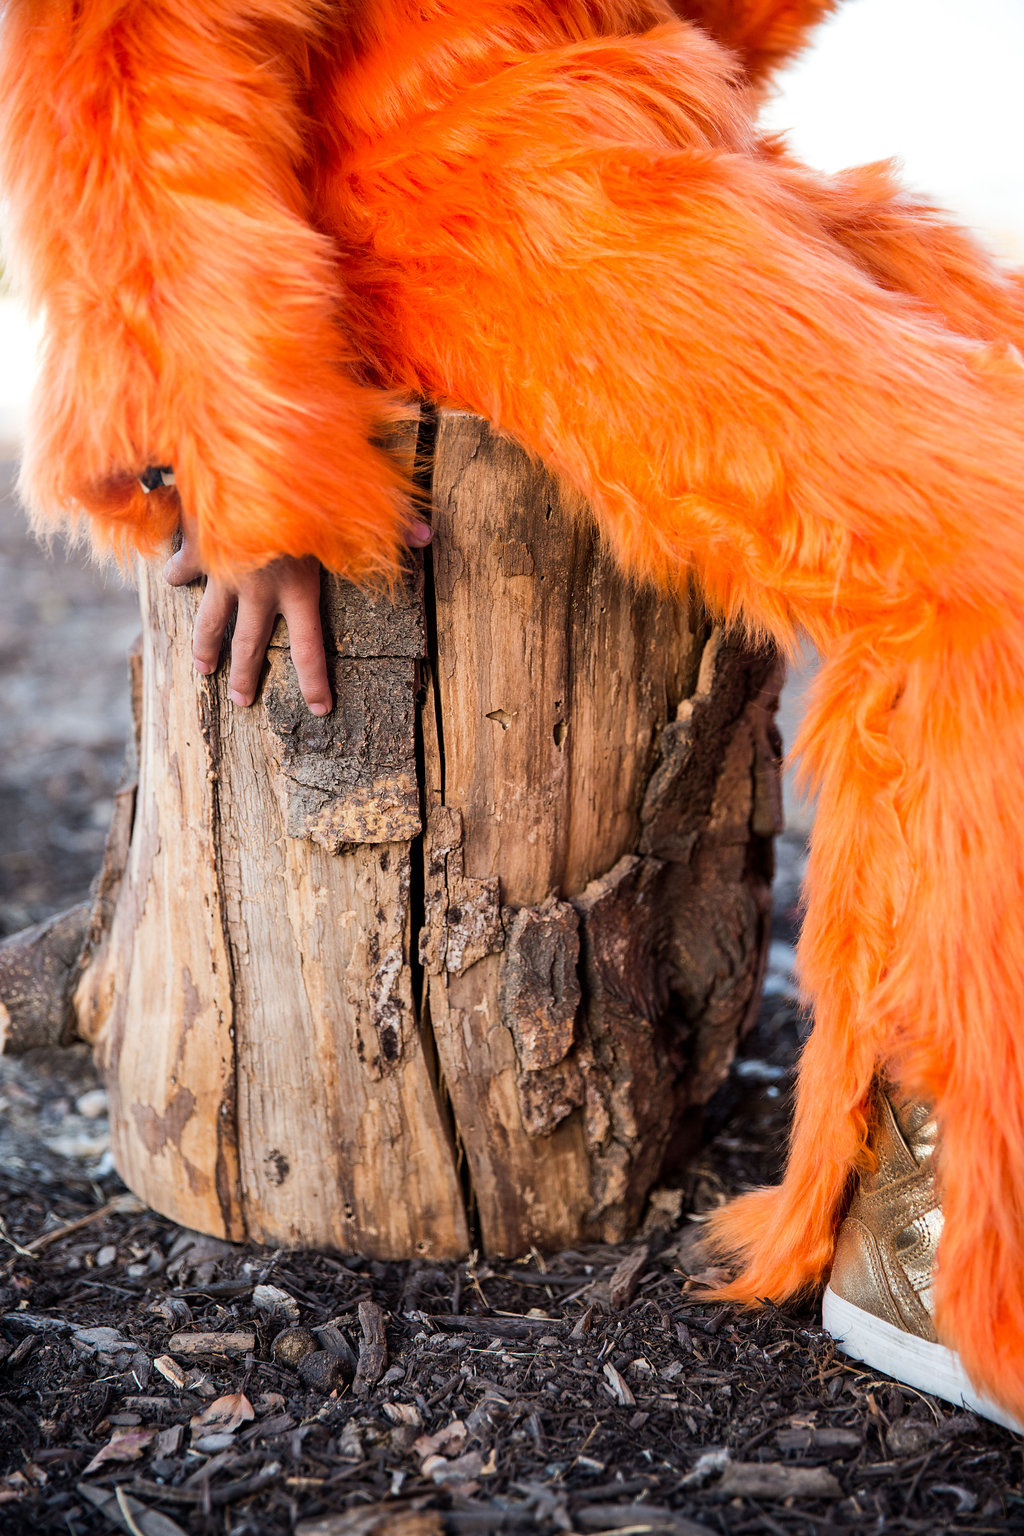 Close up of the orange fur